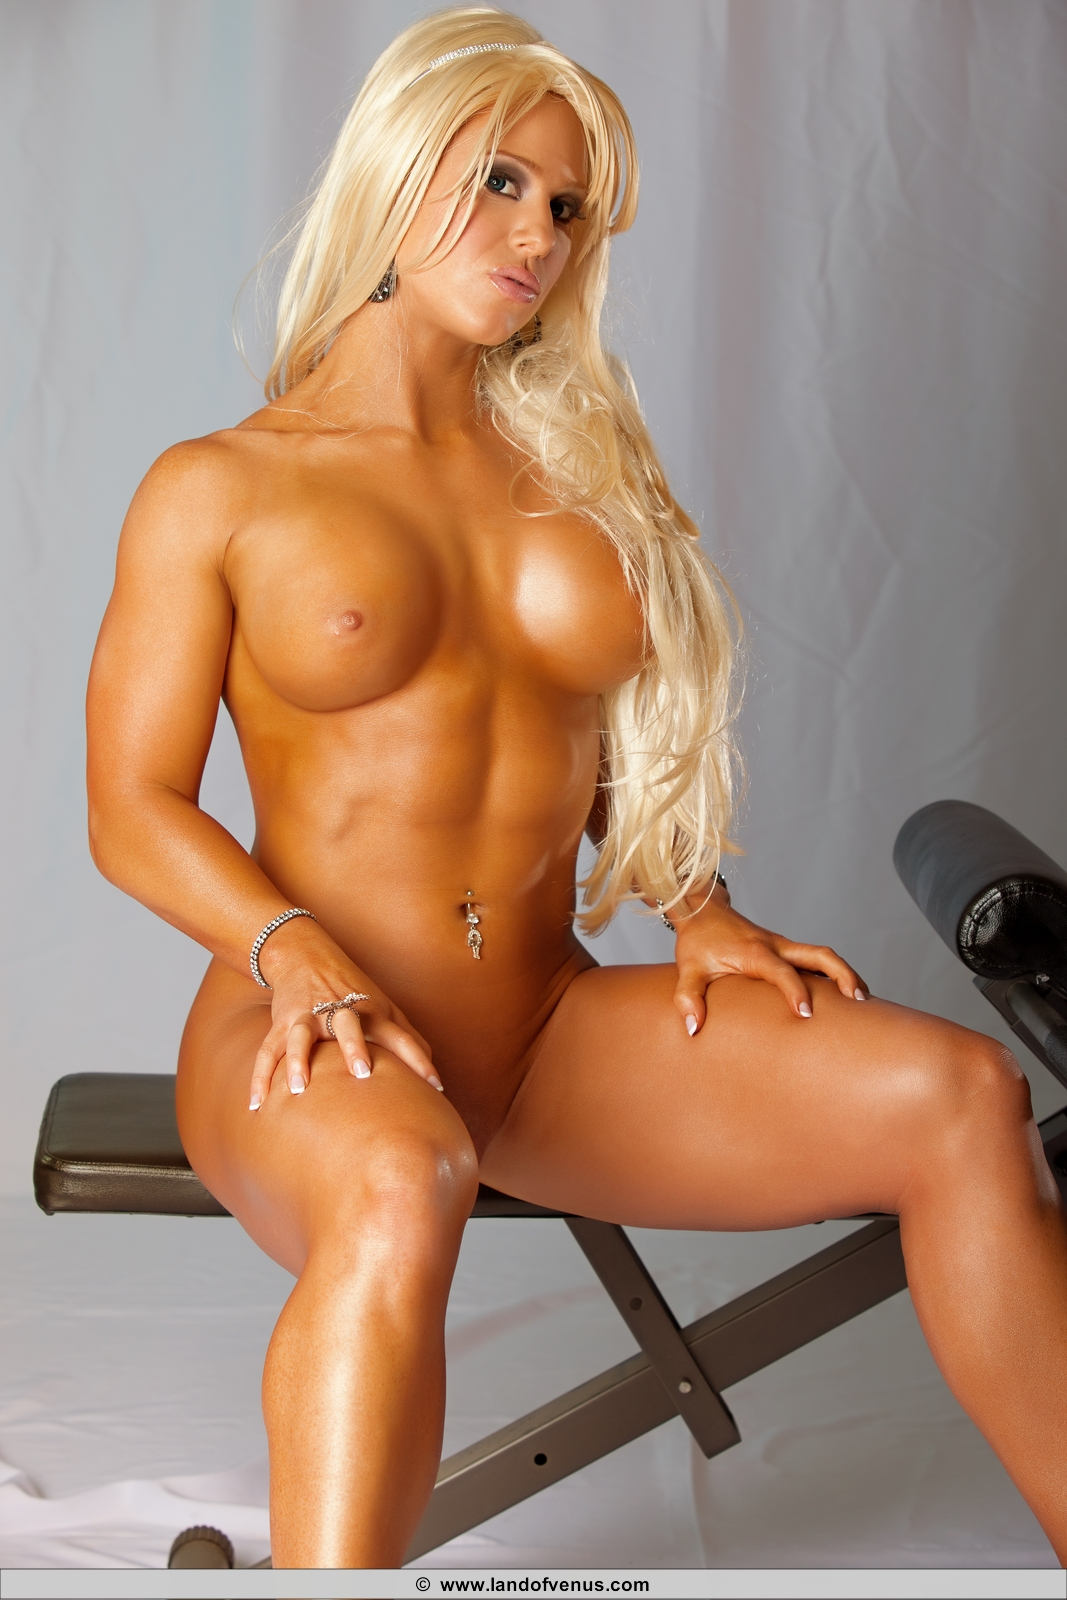 Aziani Ironcom: is your source for Nude Female